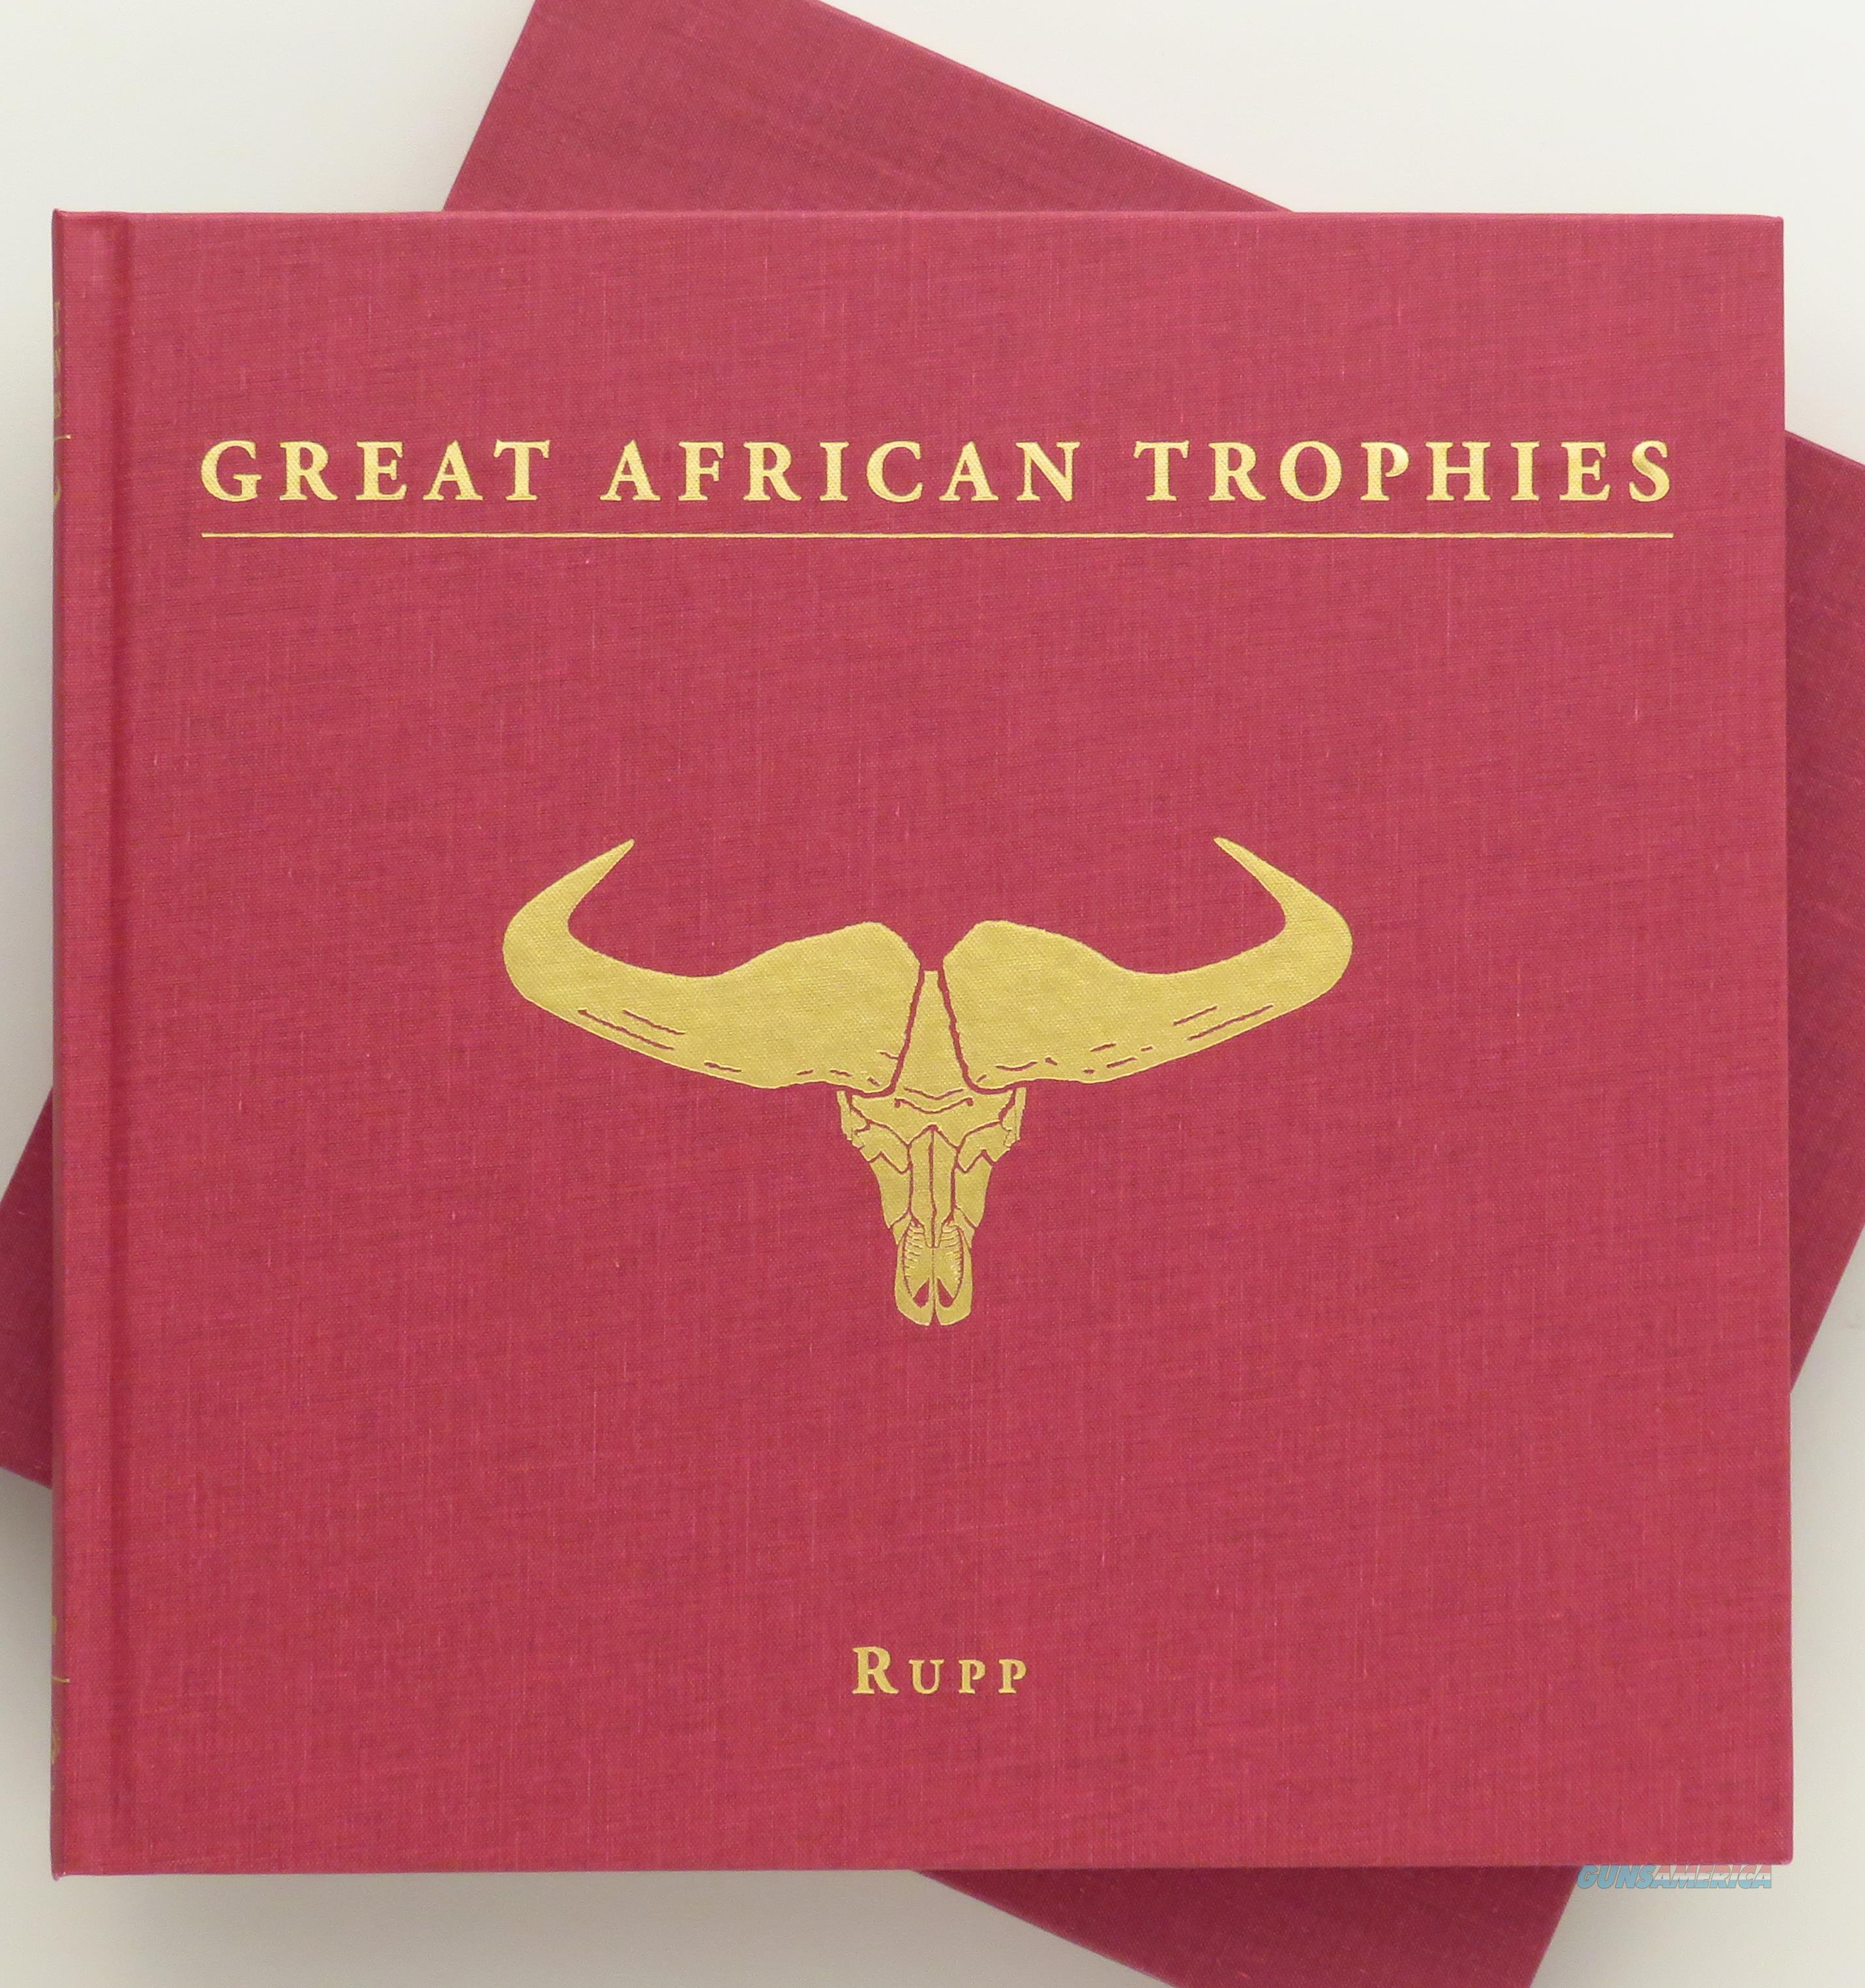 Great African Trophies by Diana Rupp, limited edition, signed, slip  Non-Guns > Books & Magazines